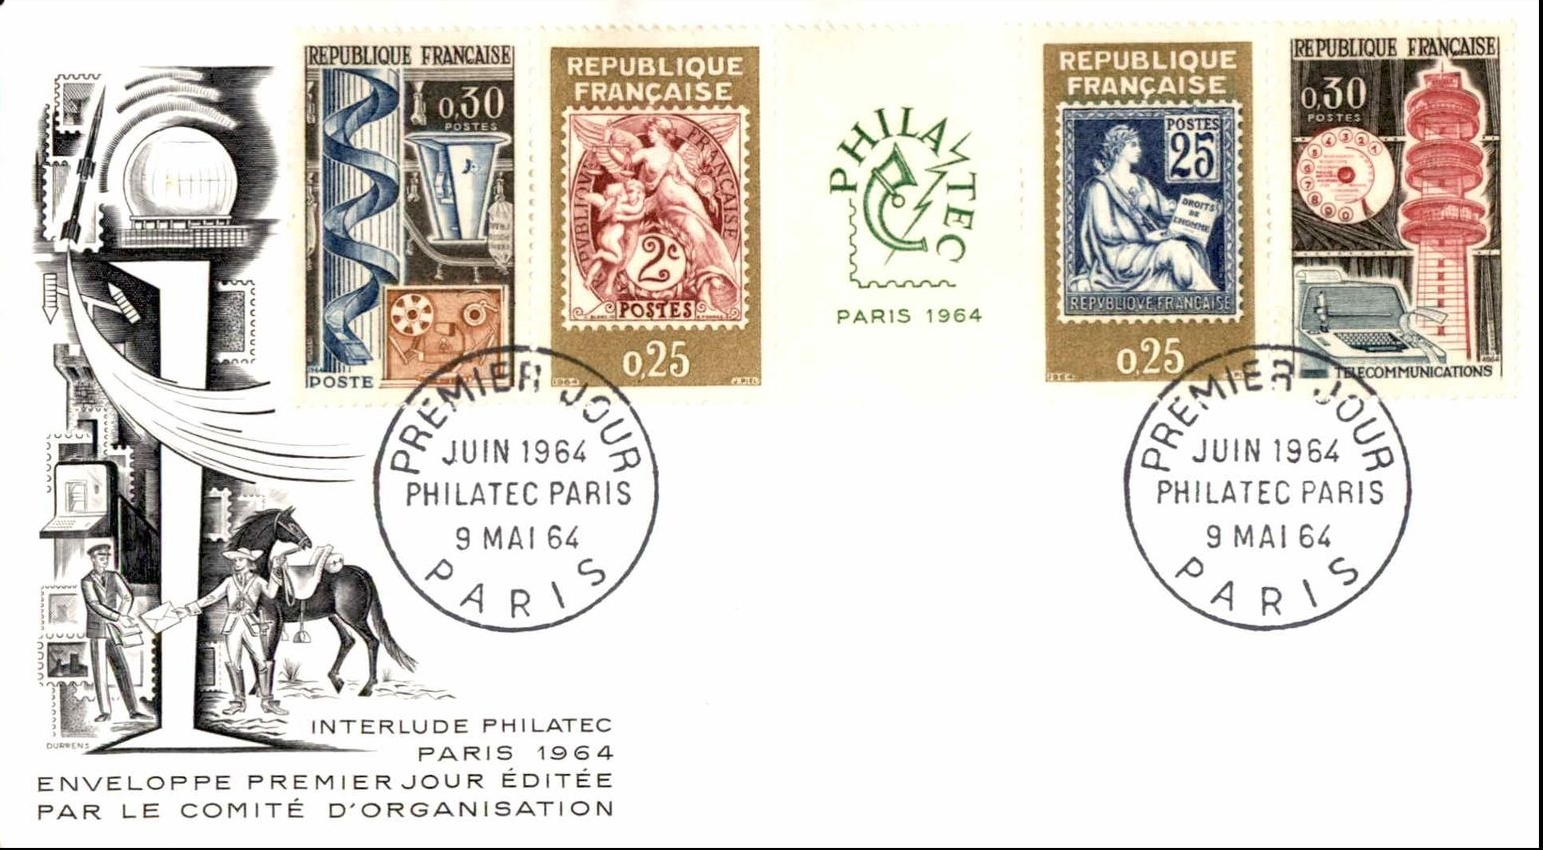 France - Scott #1085-1088 (1964) first day cover